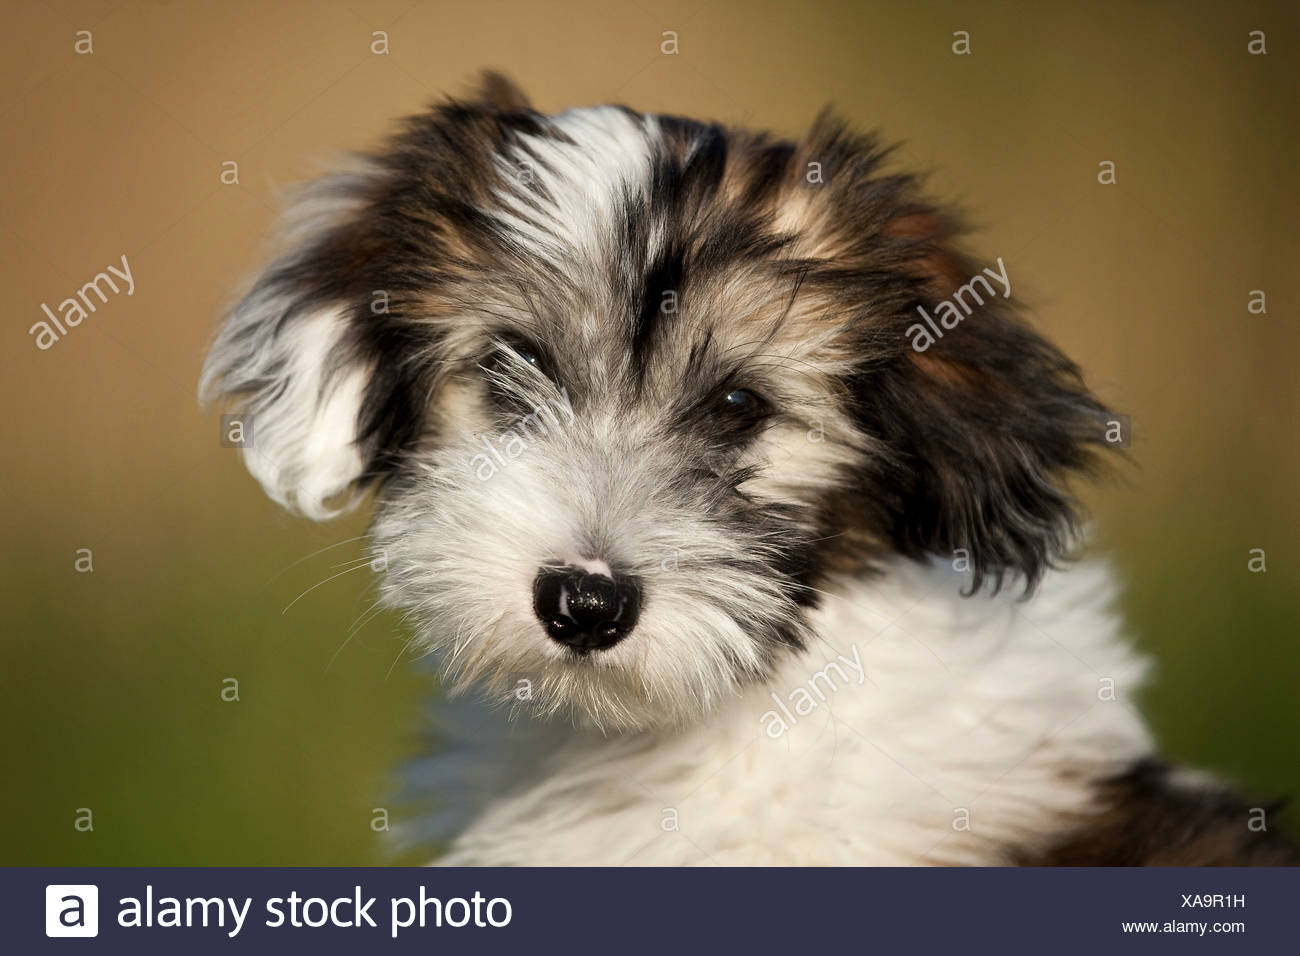 Tibetan Terrier (Canis lupus f. familiaris), portrait of a brown white spotted puppy , Germany - Stock Image